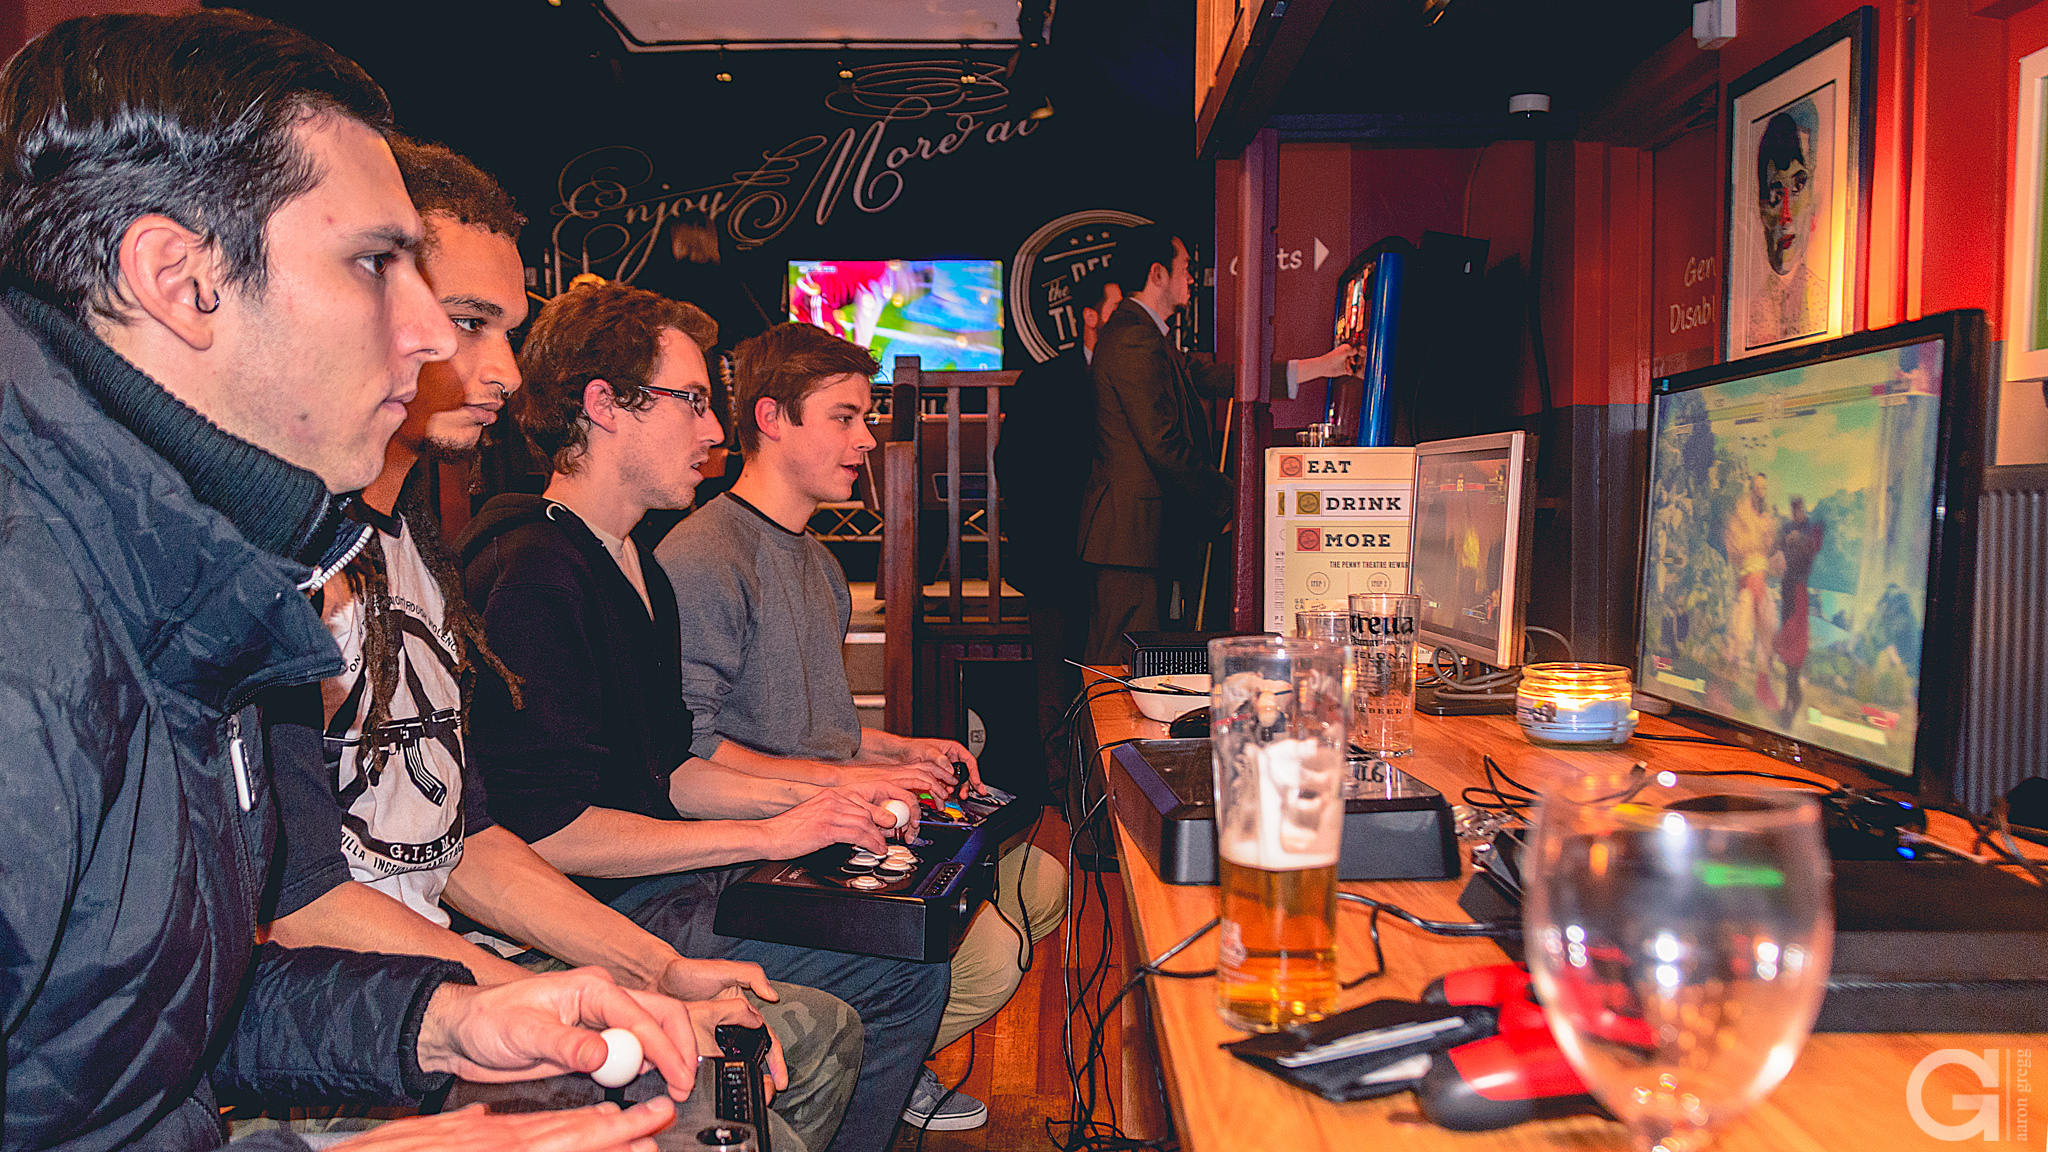 5 Tips on getting helpful information about your favorite video game